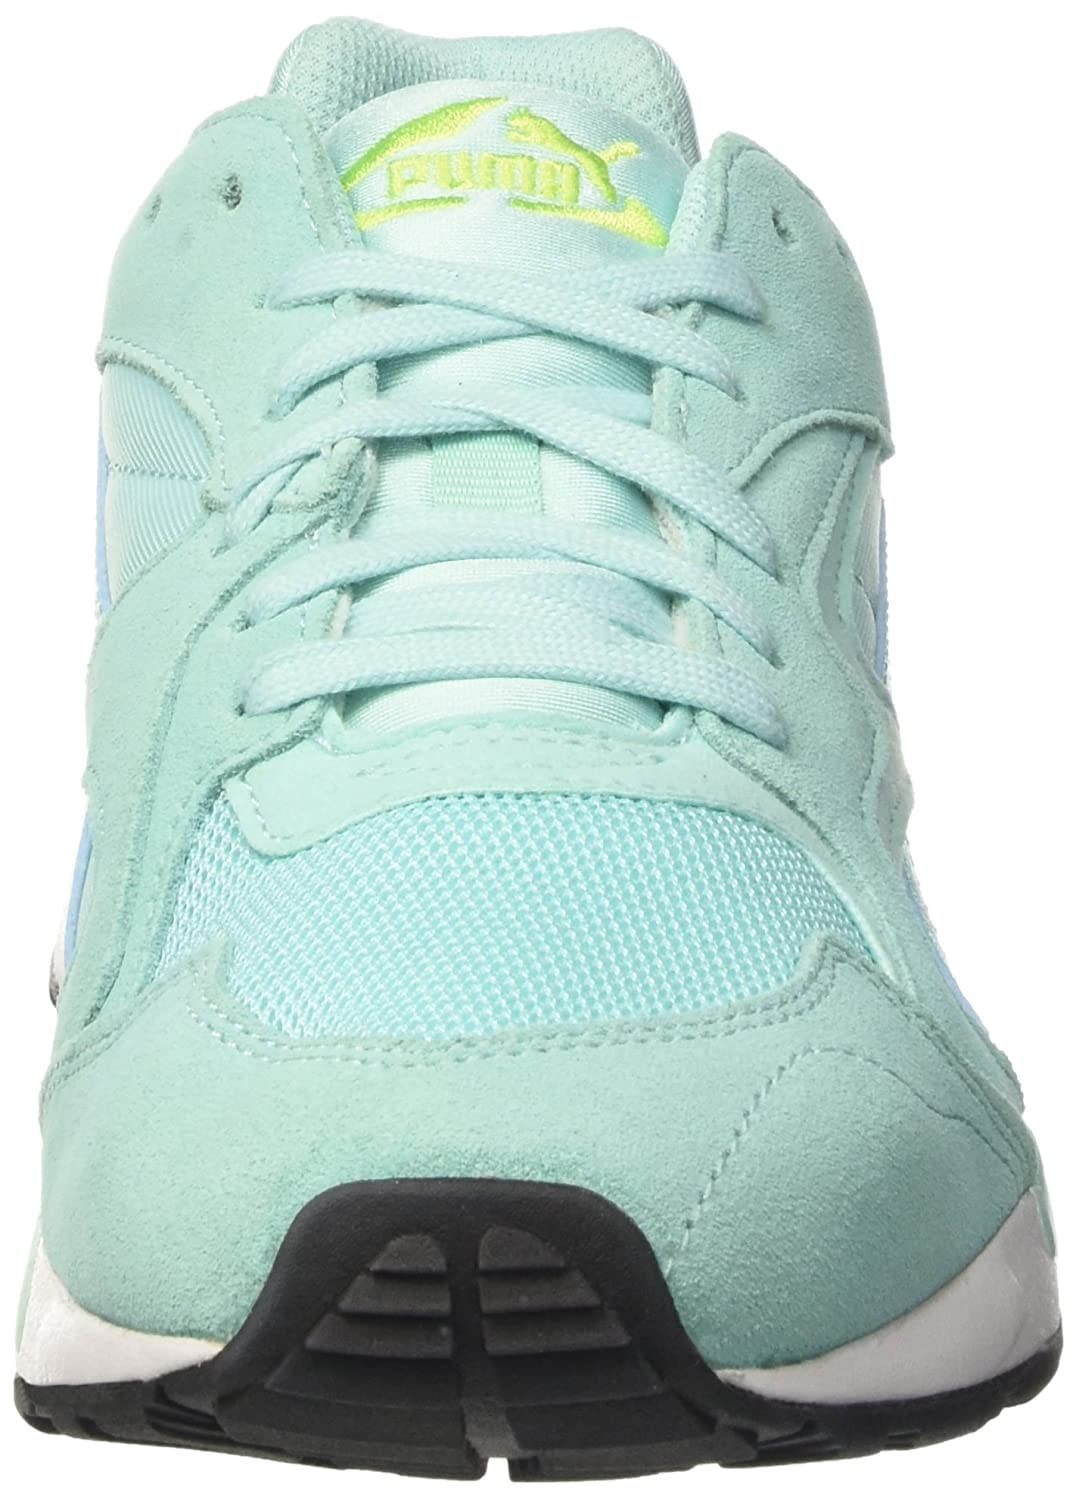 Puma Unisex-Erwachsene Prevail Yellow-puma Niedrig-Top Blau (Aruba Blau-safety Yellow-puma Prevail Weiß 05) d8942c